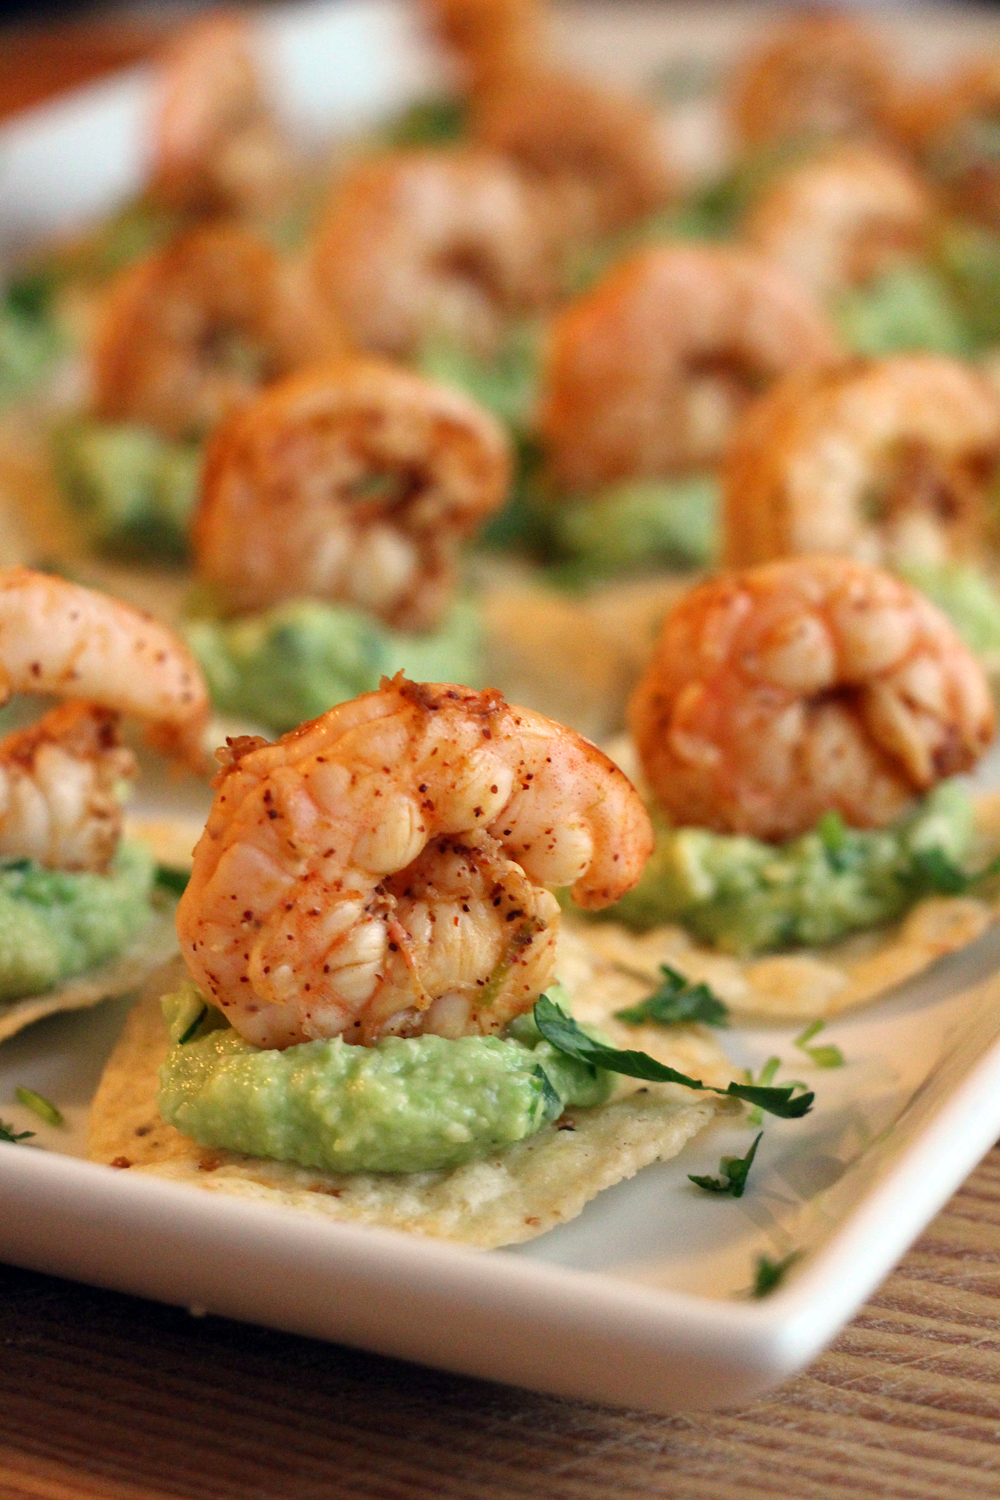 Chili-Lime Shrimp and Guacamole Tostadas. Photo: Wendy Goodfriend